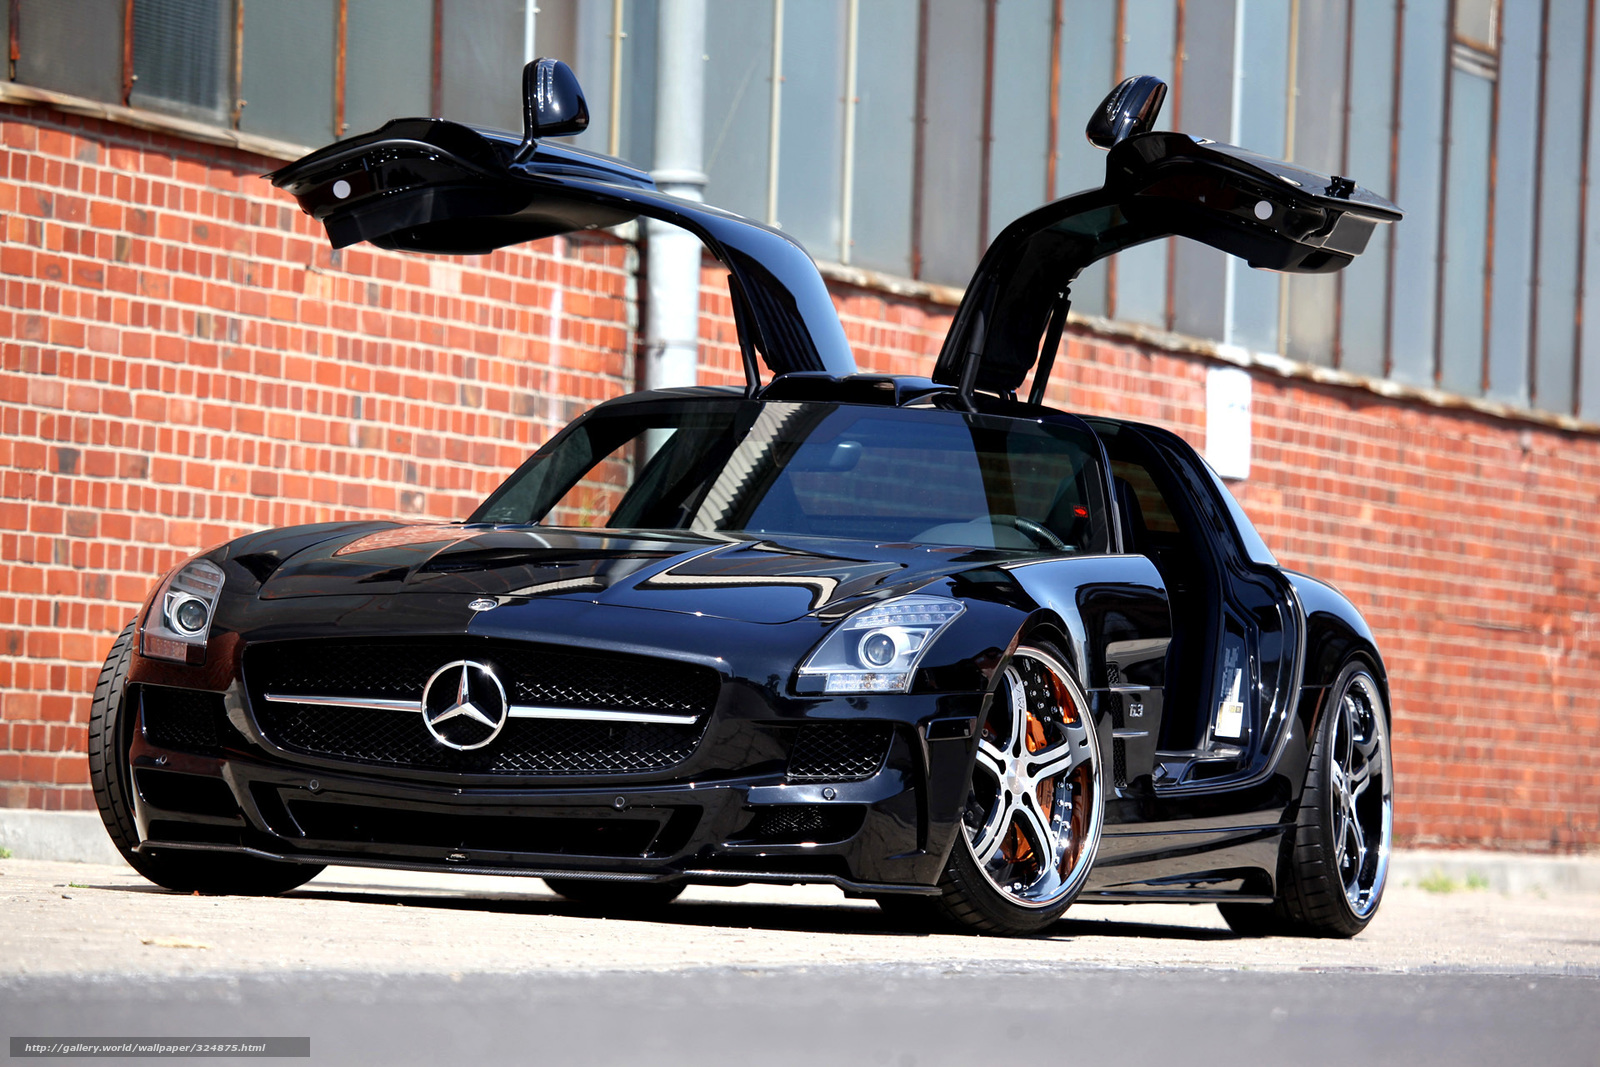 1920 X 1280 Wallpapers http://de.gdefon.com/download/Mercedes_Fotos-von-Autos_Autos_Car/324875/1920x1280